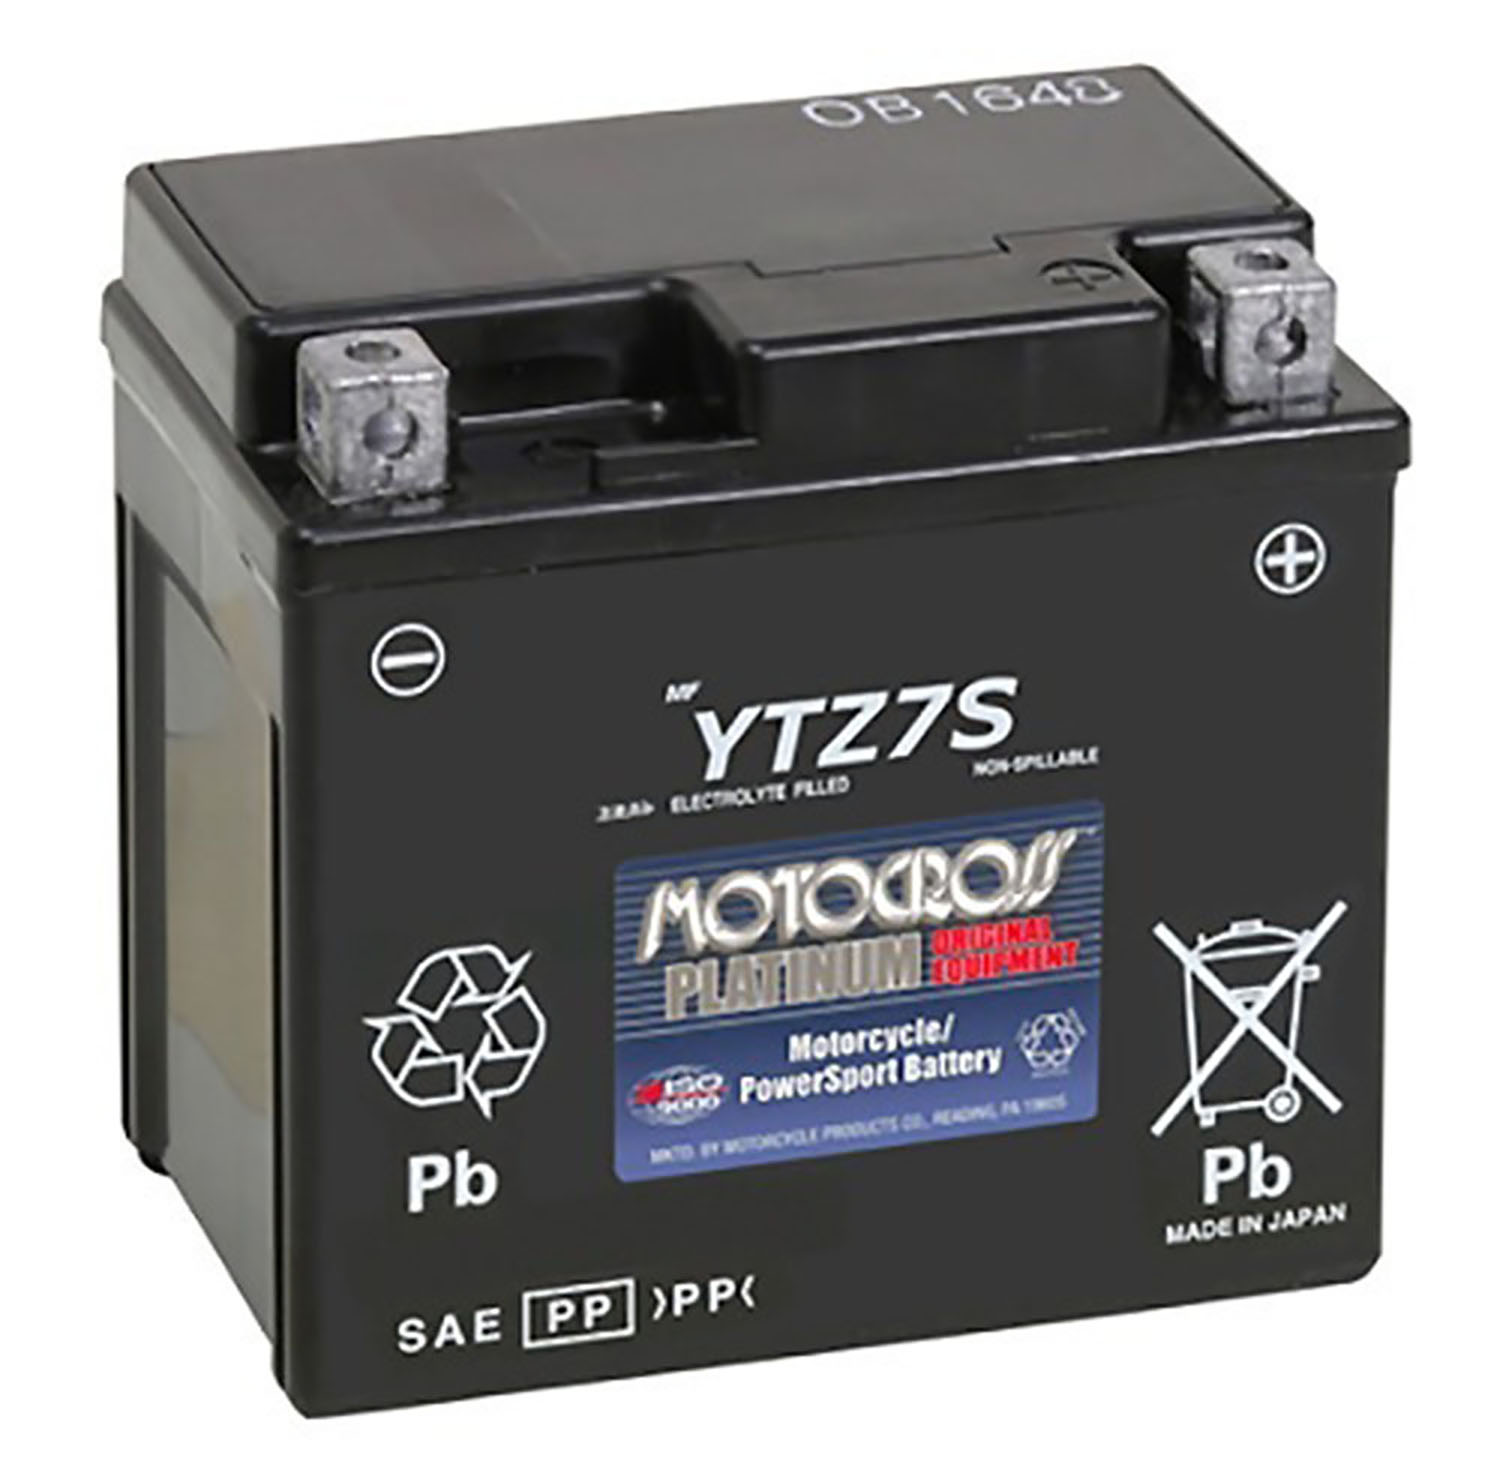 12V 6AH Battery for Hyosung 100 EZ100 All Years